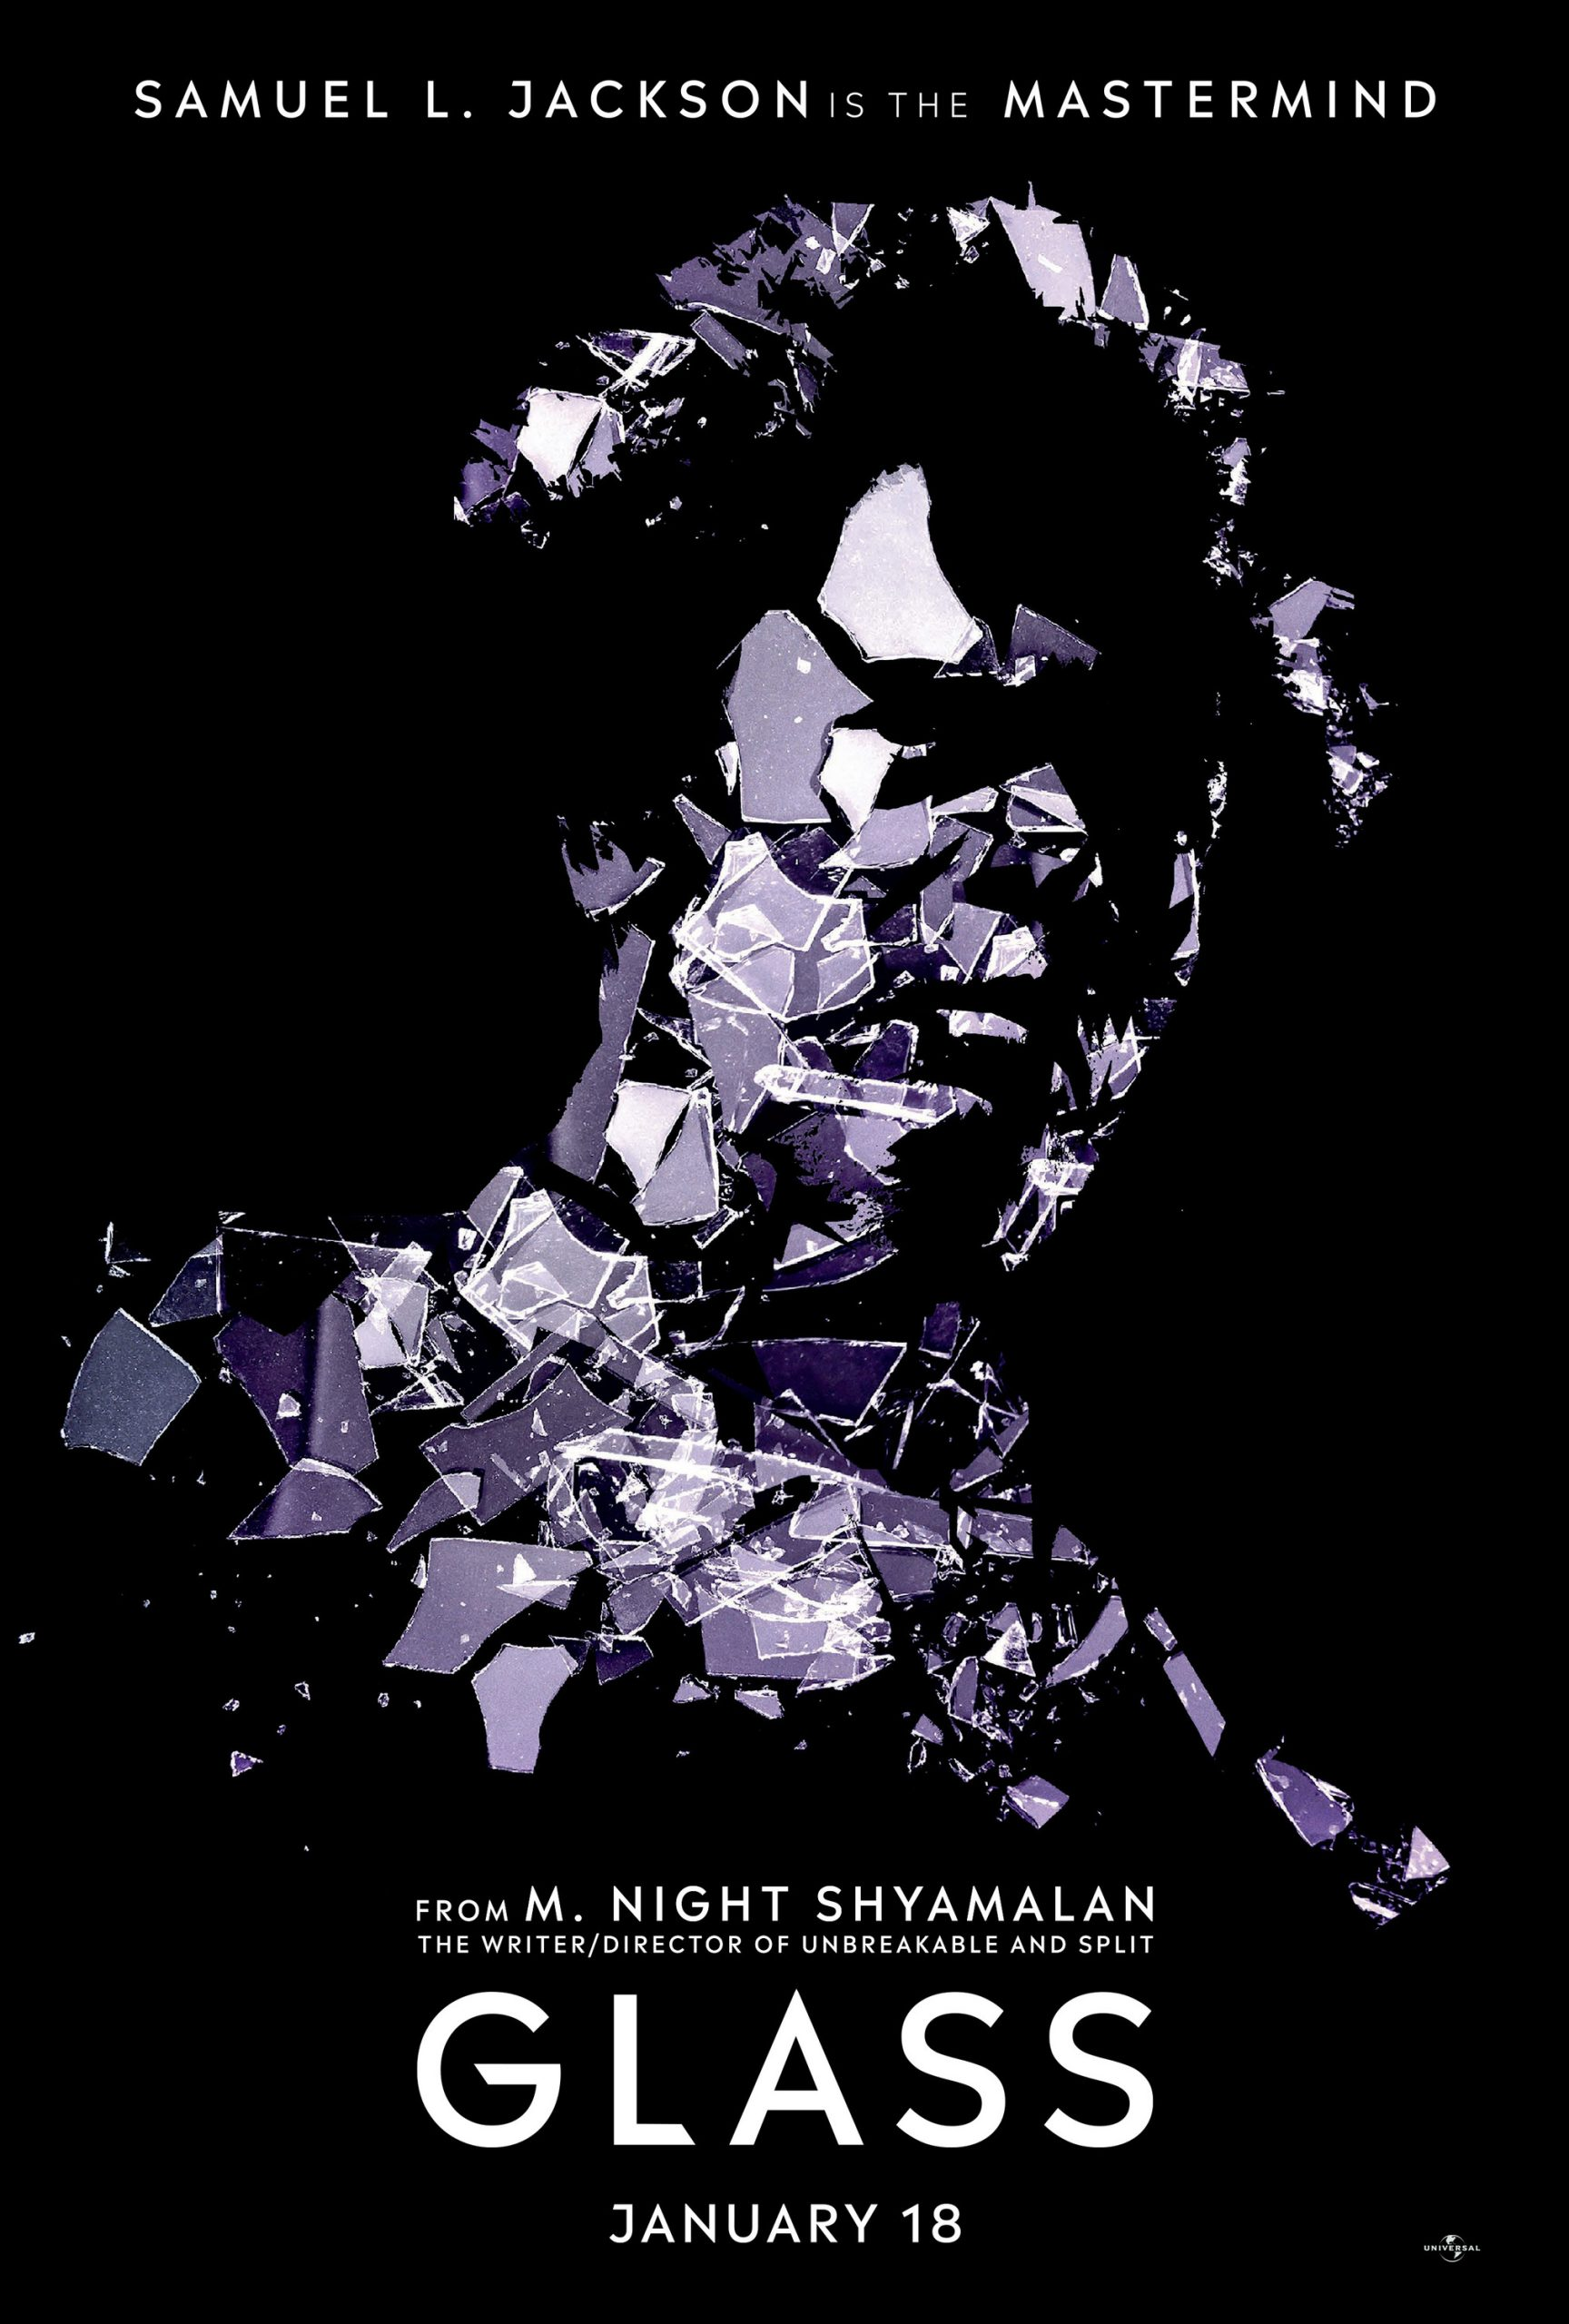 Glass Character Posters Samuel L Jackson is the Mastermind